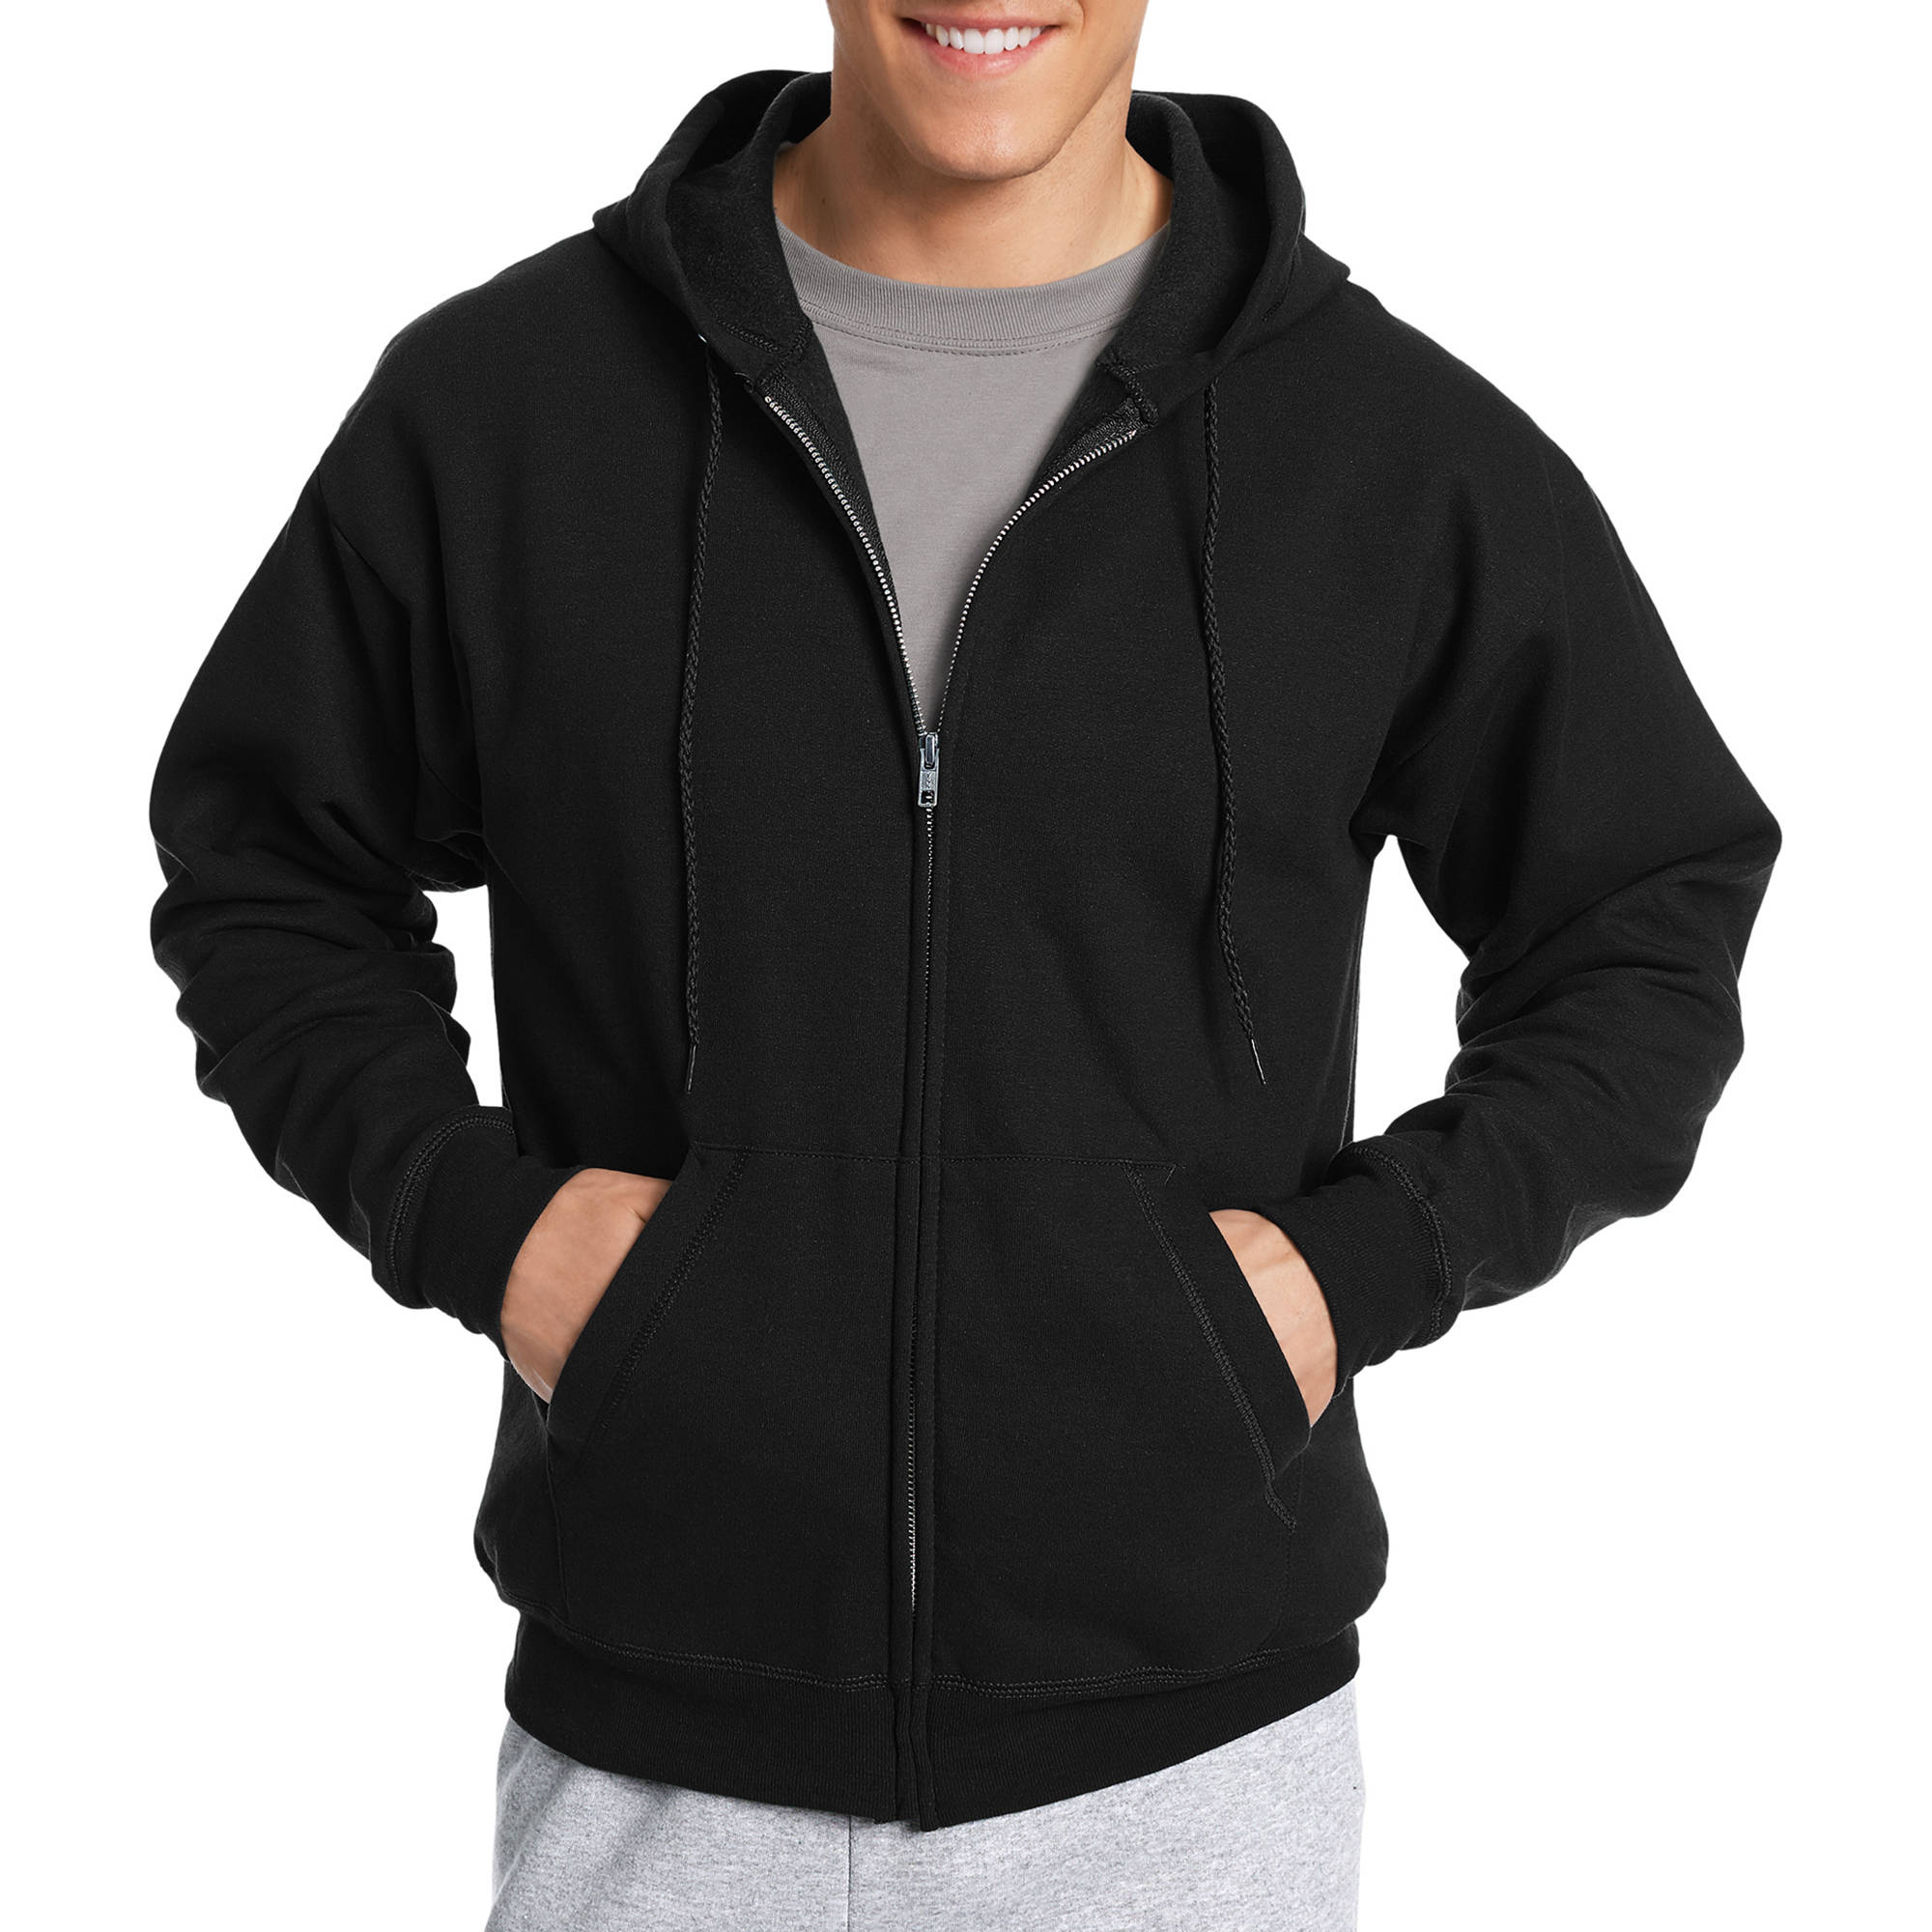 Hanes Men's EcoSmart Fleece Zip Pullover Hoodie with Front Pocket ...